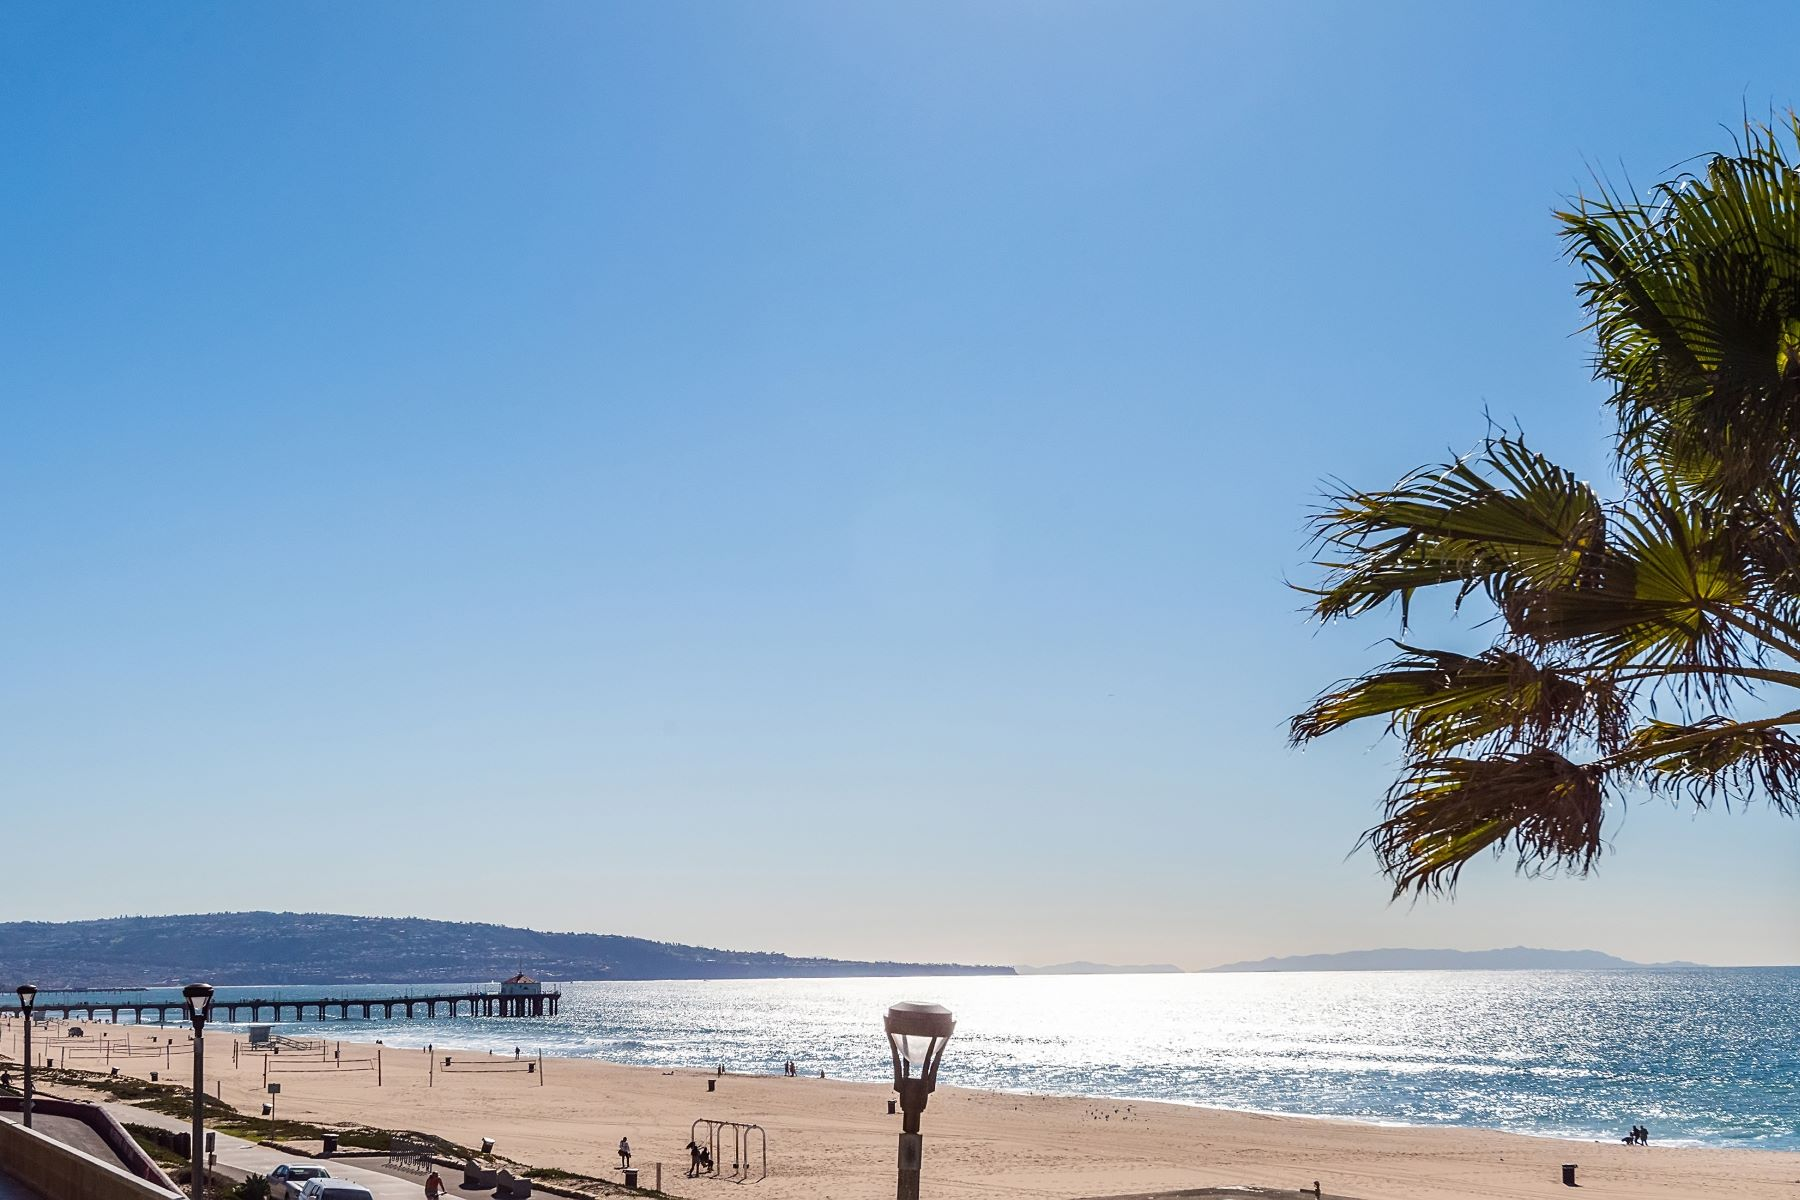 Single Family Homes for Sale at 2304 The Strand, Manhattan Beach, CA 90266 2304 The Strand Manhattan Beach, California 90266 United States